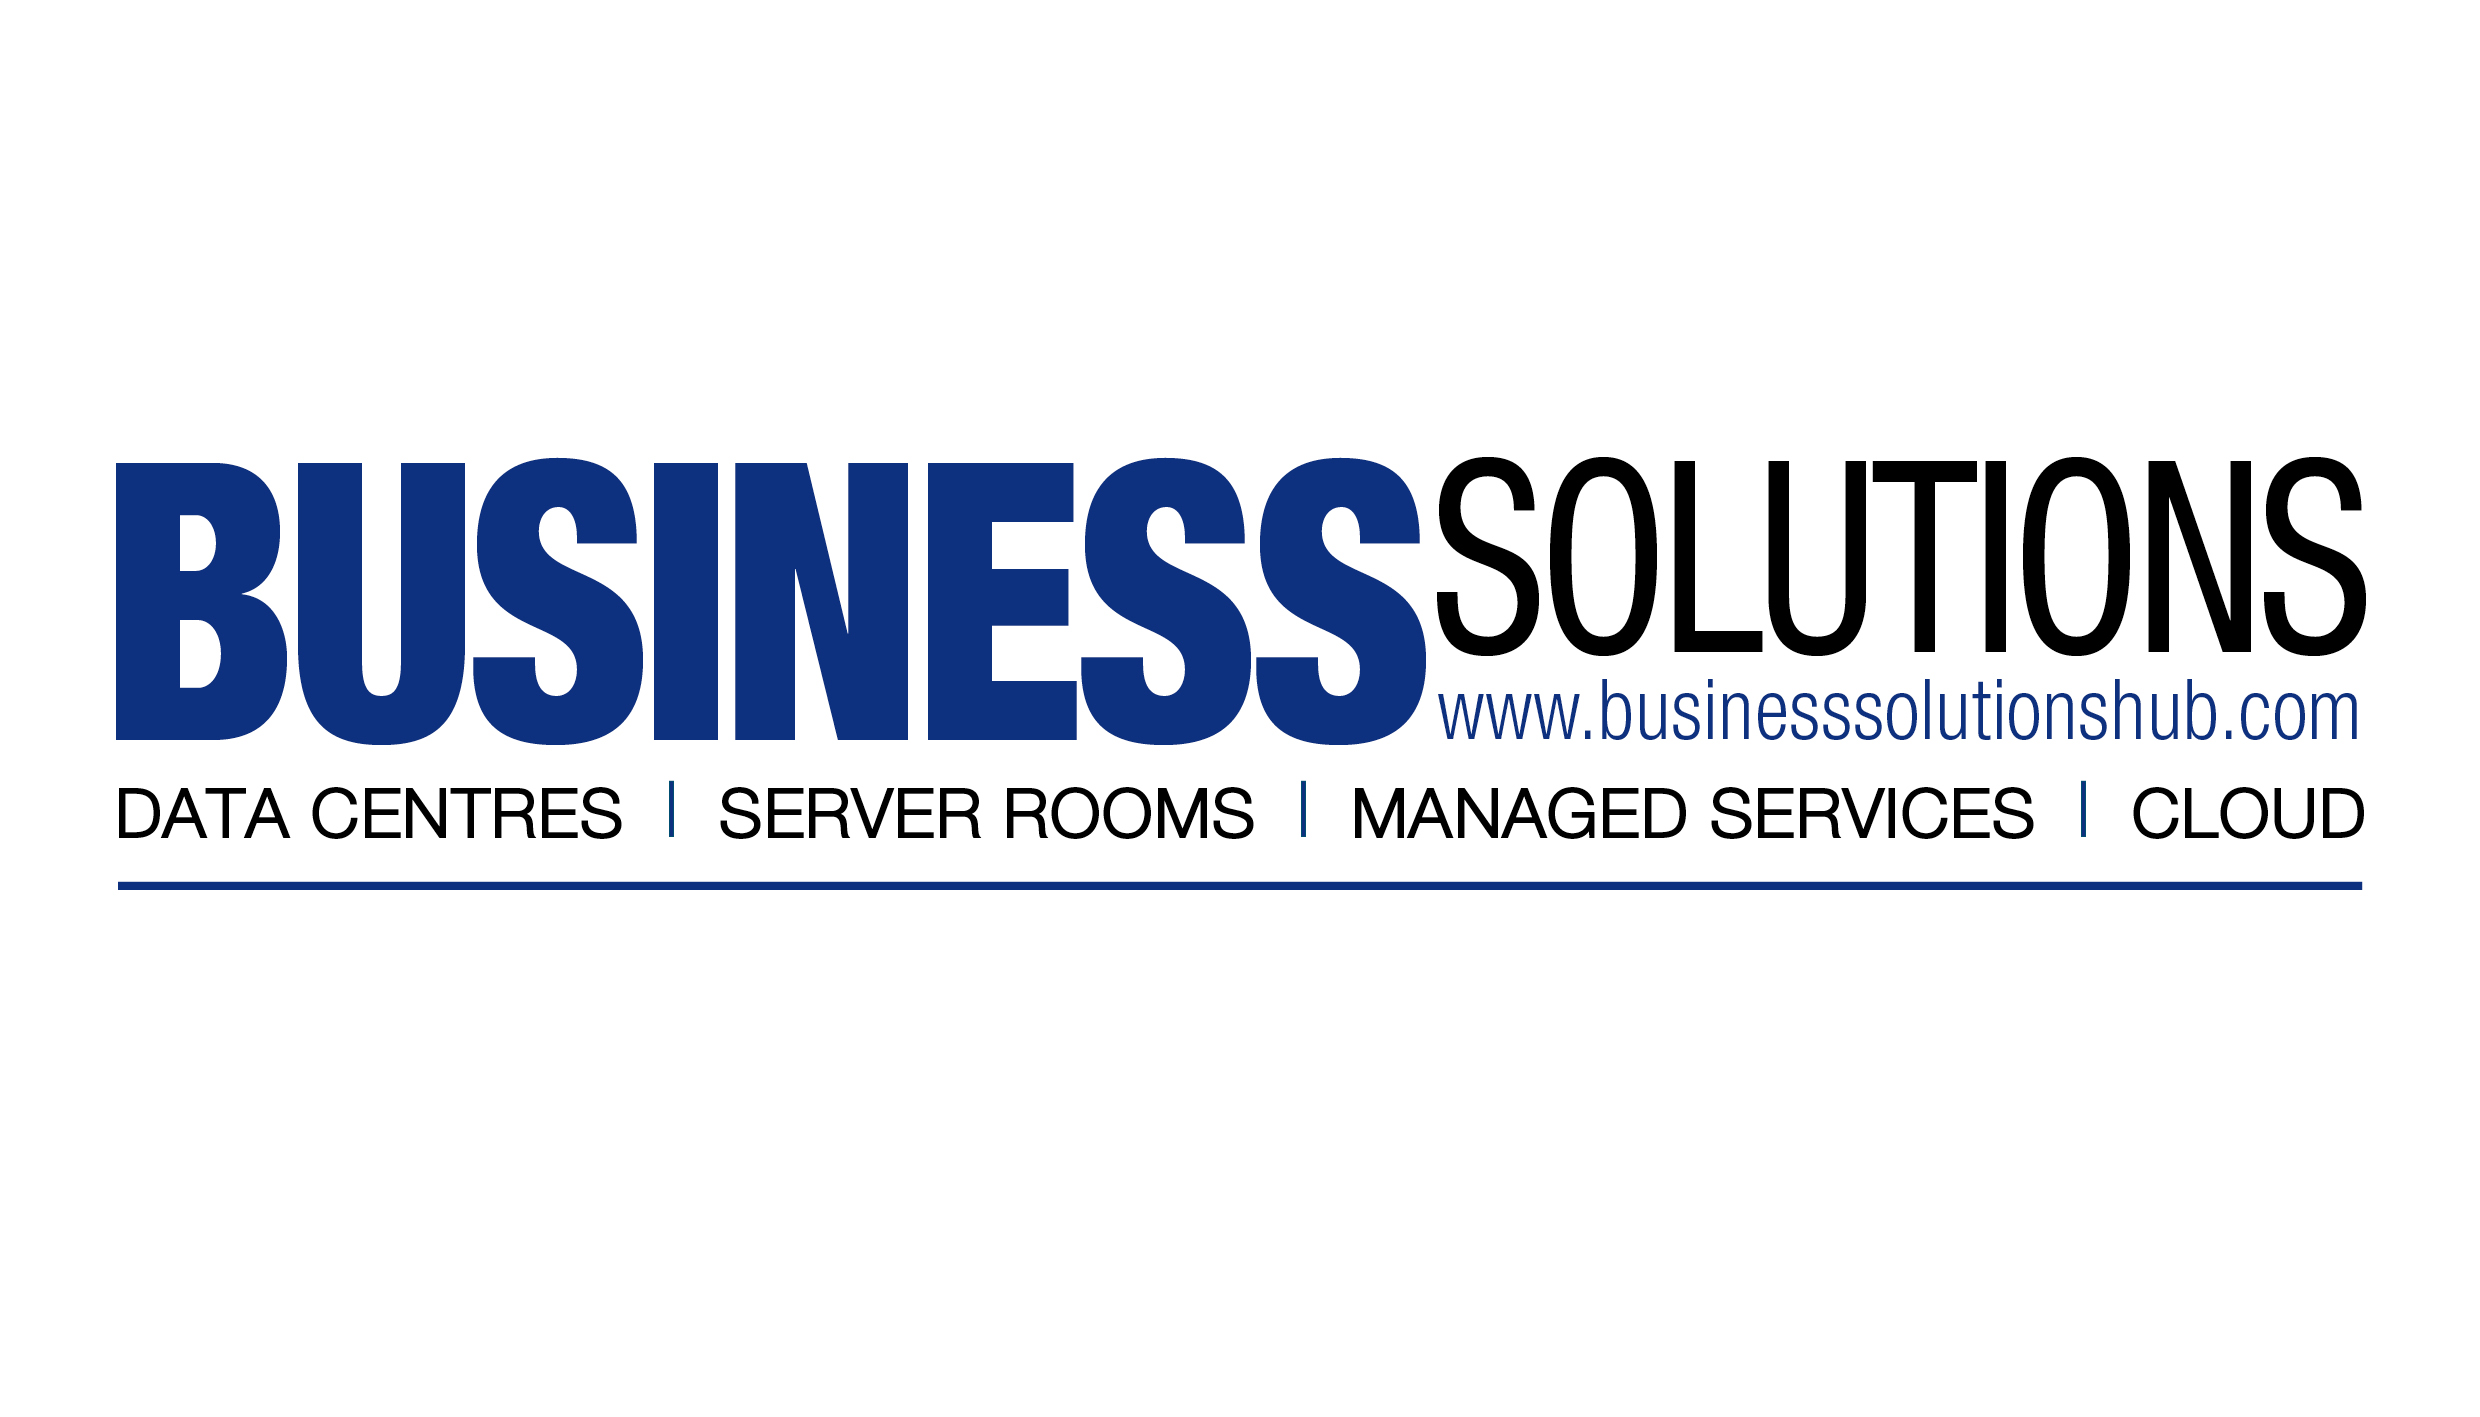 BUSINESS SOLUTIONS FINAL OPTION